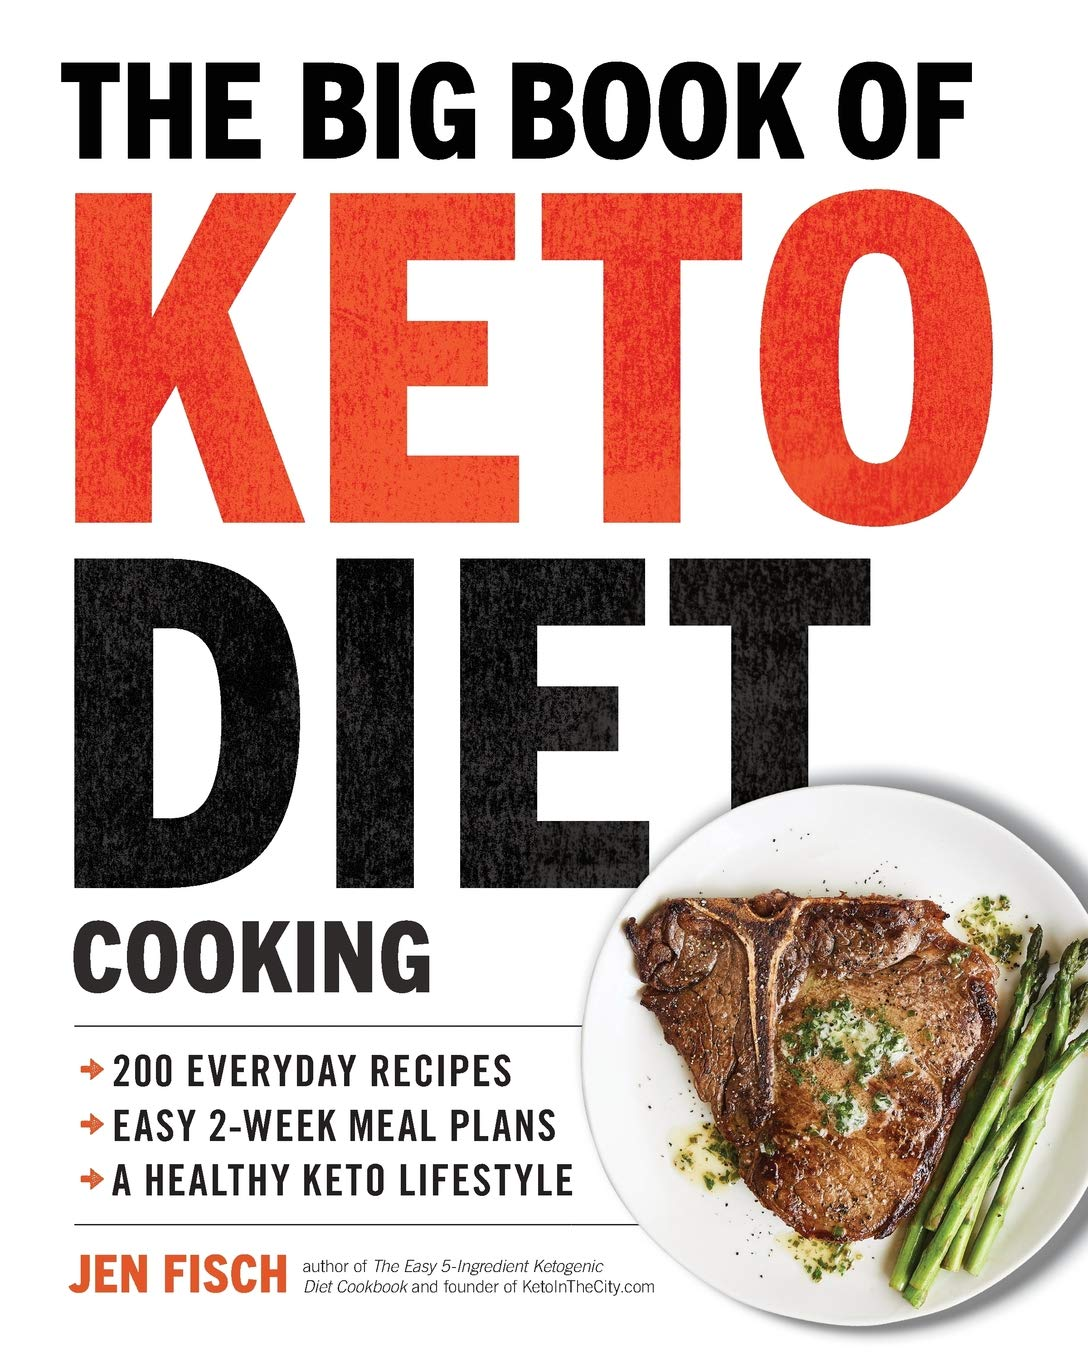 Image OfThe Big Book Of Ketogenic Diet Cooking: 200 Everyday Recipes And Easy 2-Week Meal Plans For A Healthy Keto Lifestyle